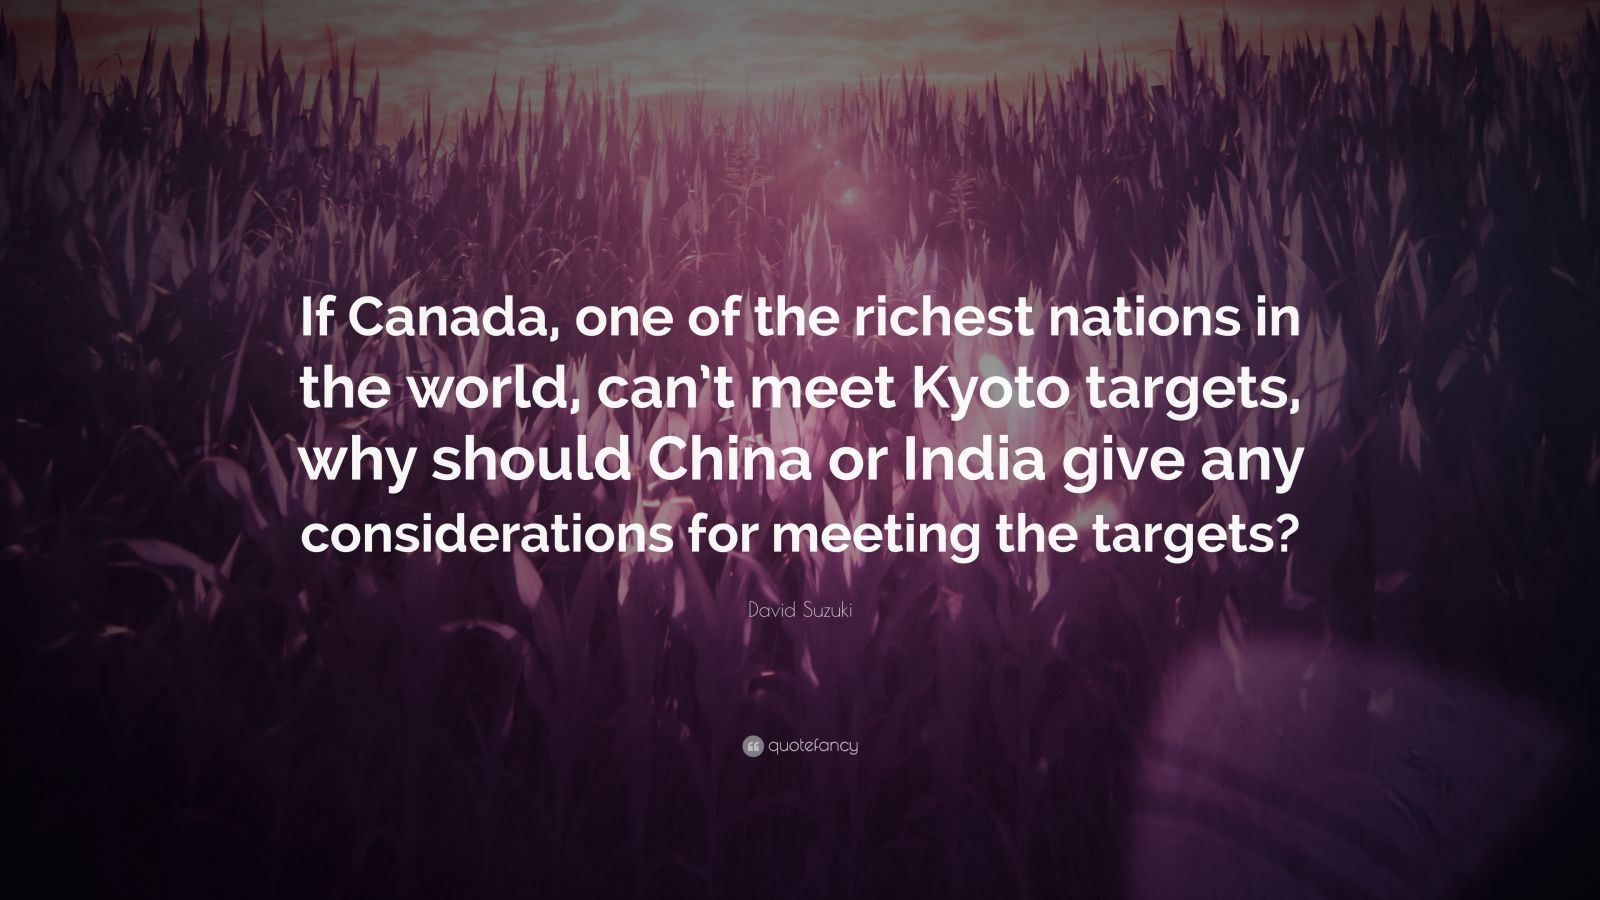 """David Suzuki Quote: """"If Canada, one of the richest nations in the world, can't meet Kyoto targets, why should China or India give any considerations for meeting the targets?"""""""